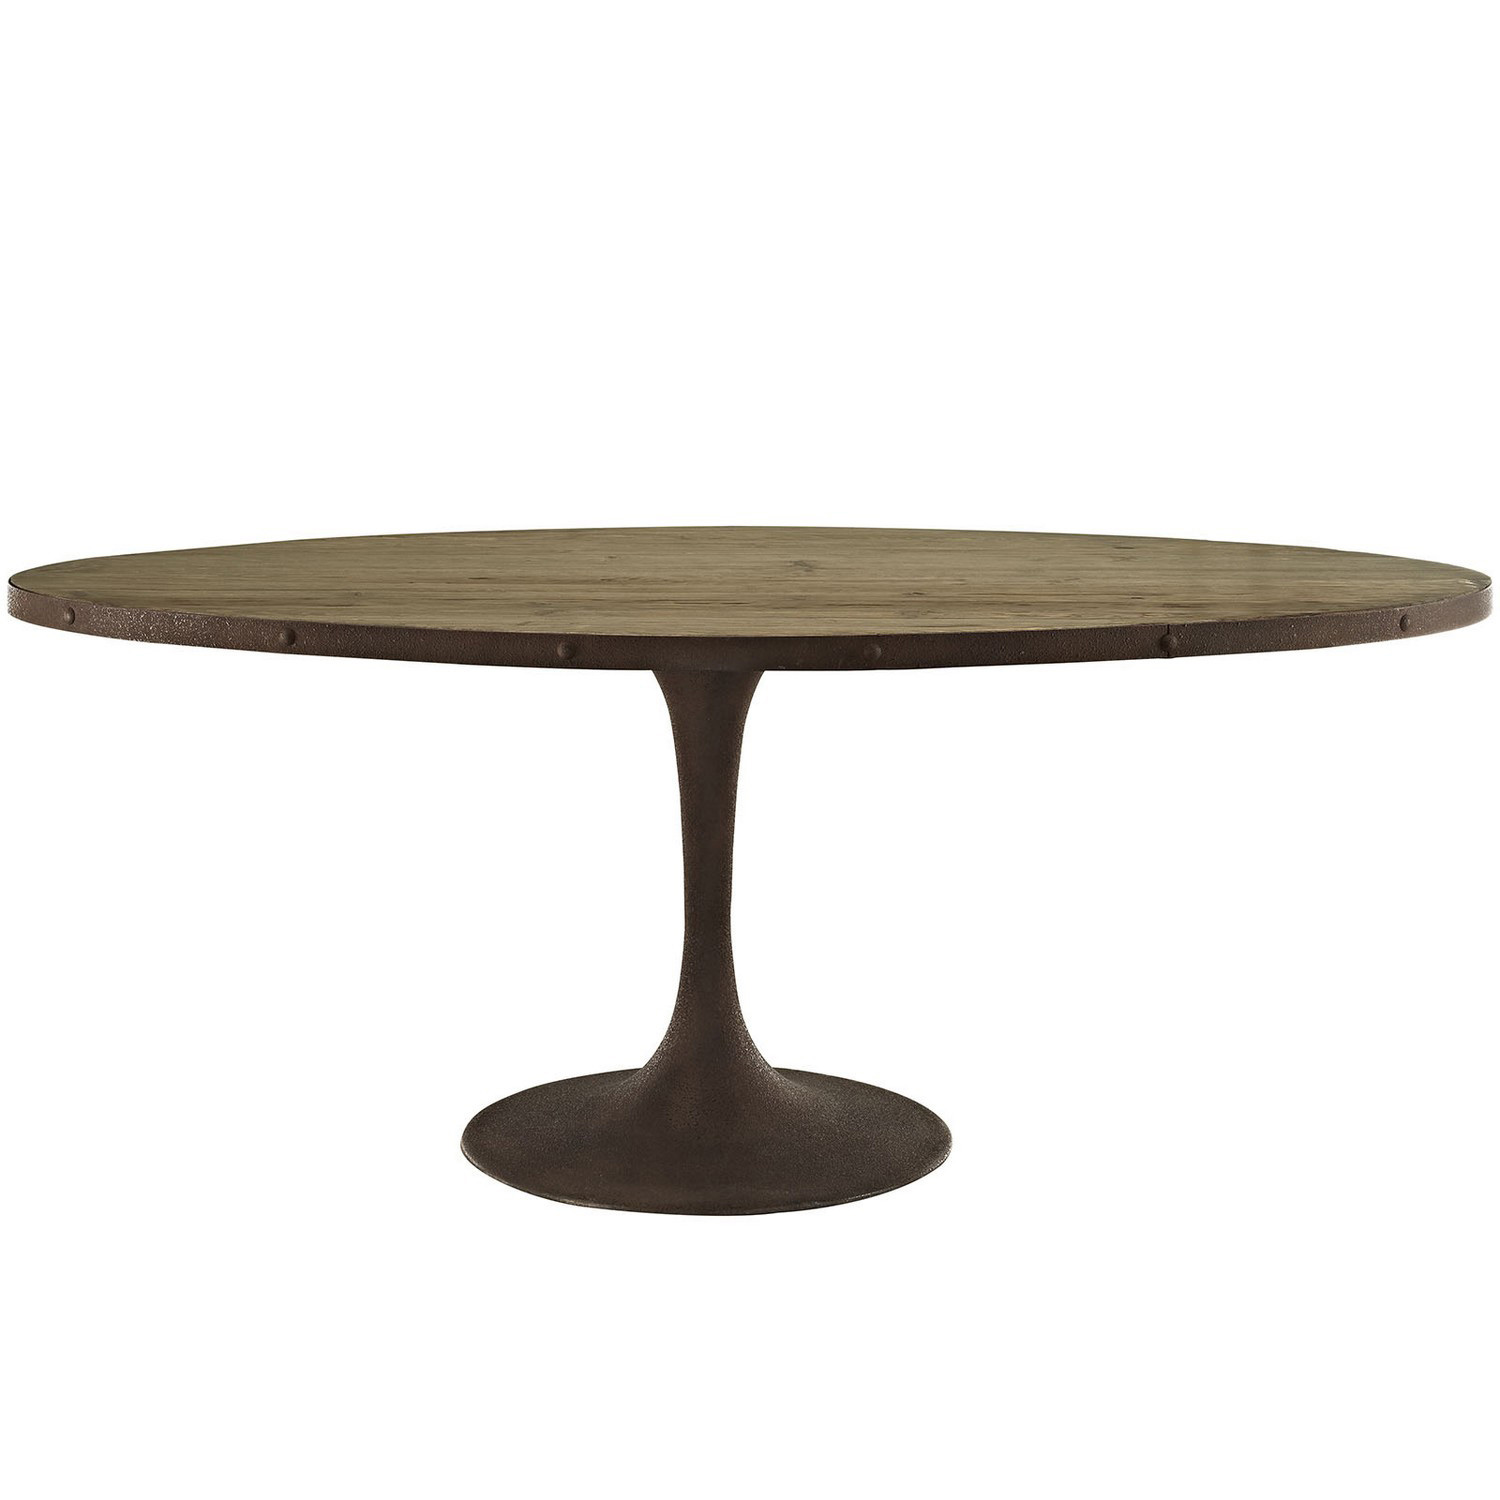 Modway Drive 78-inch Oval Wood Top Dining Table - Brown